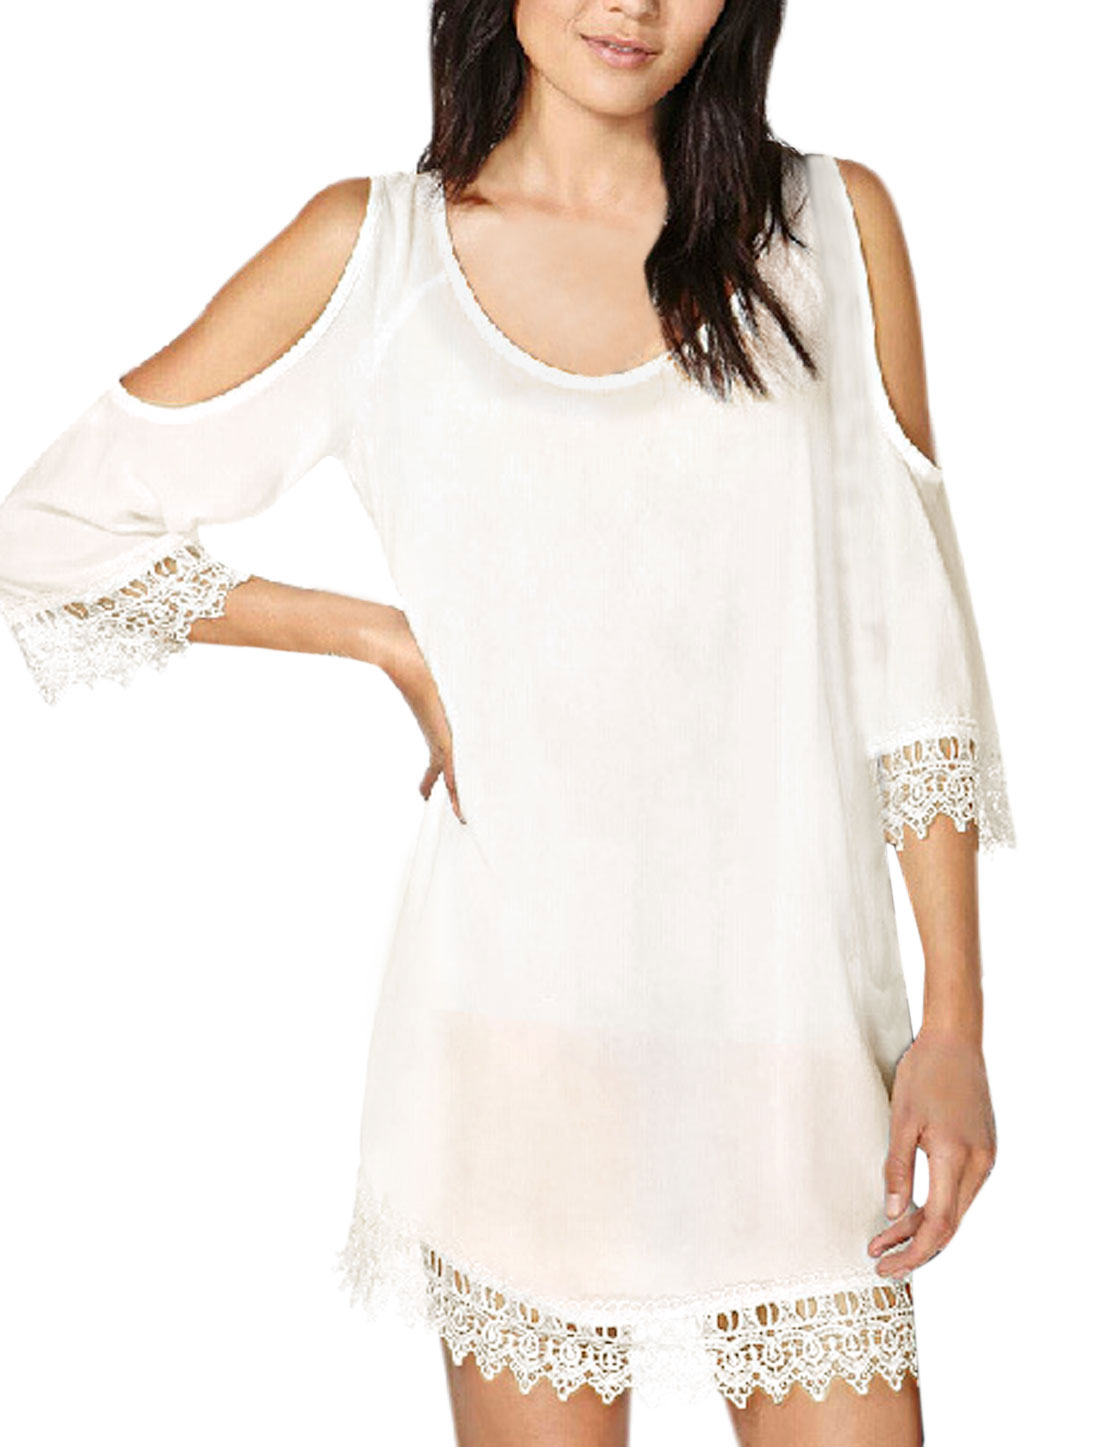 Women Scoop Neck 3/4 Sleeves Open Back A Line Dress White S